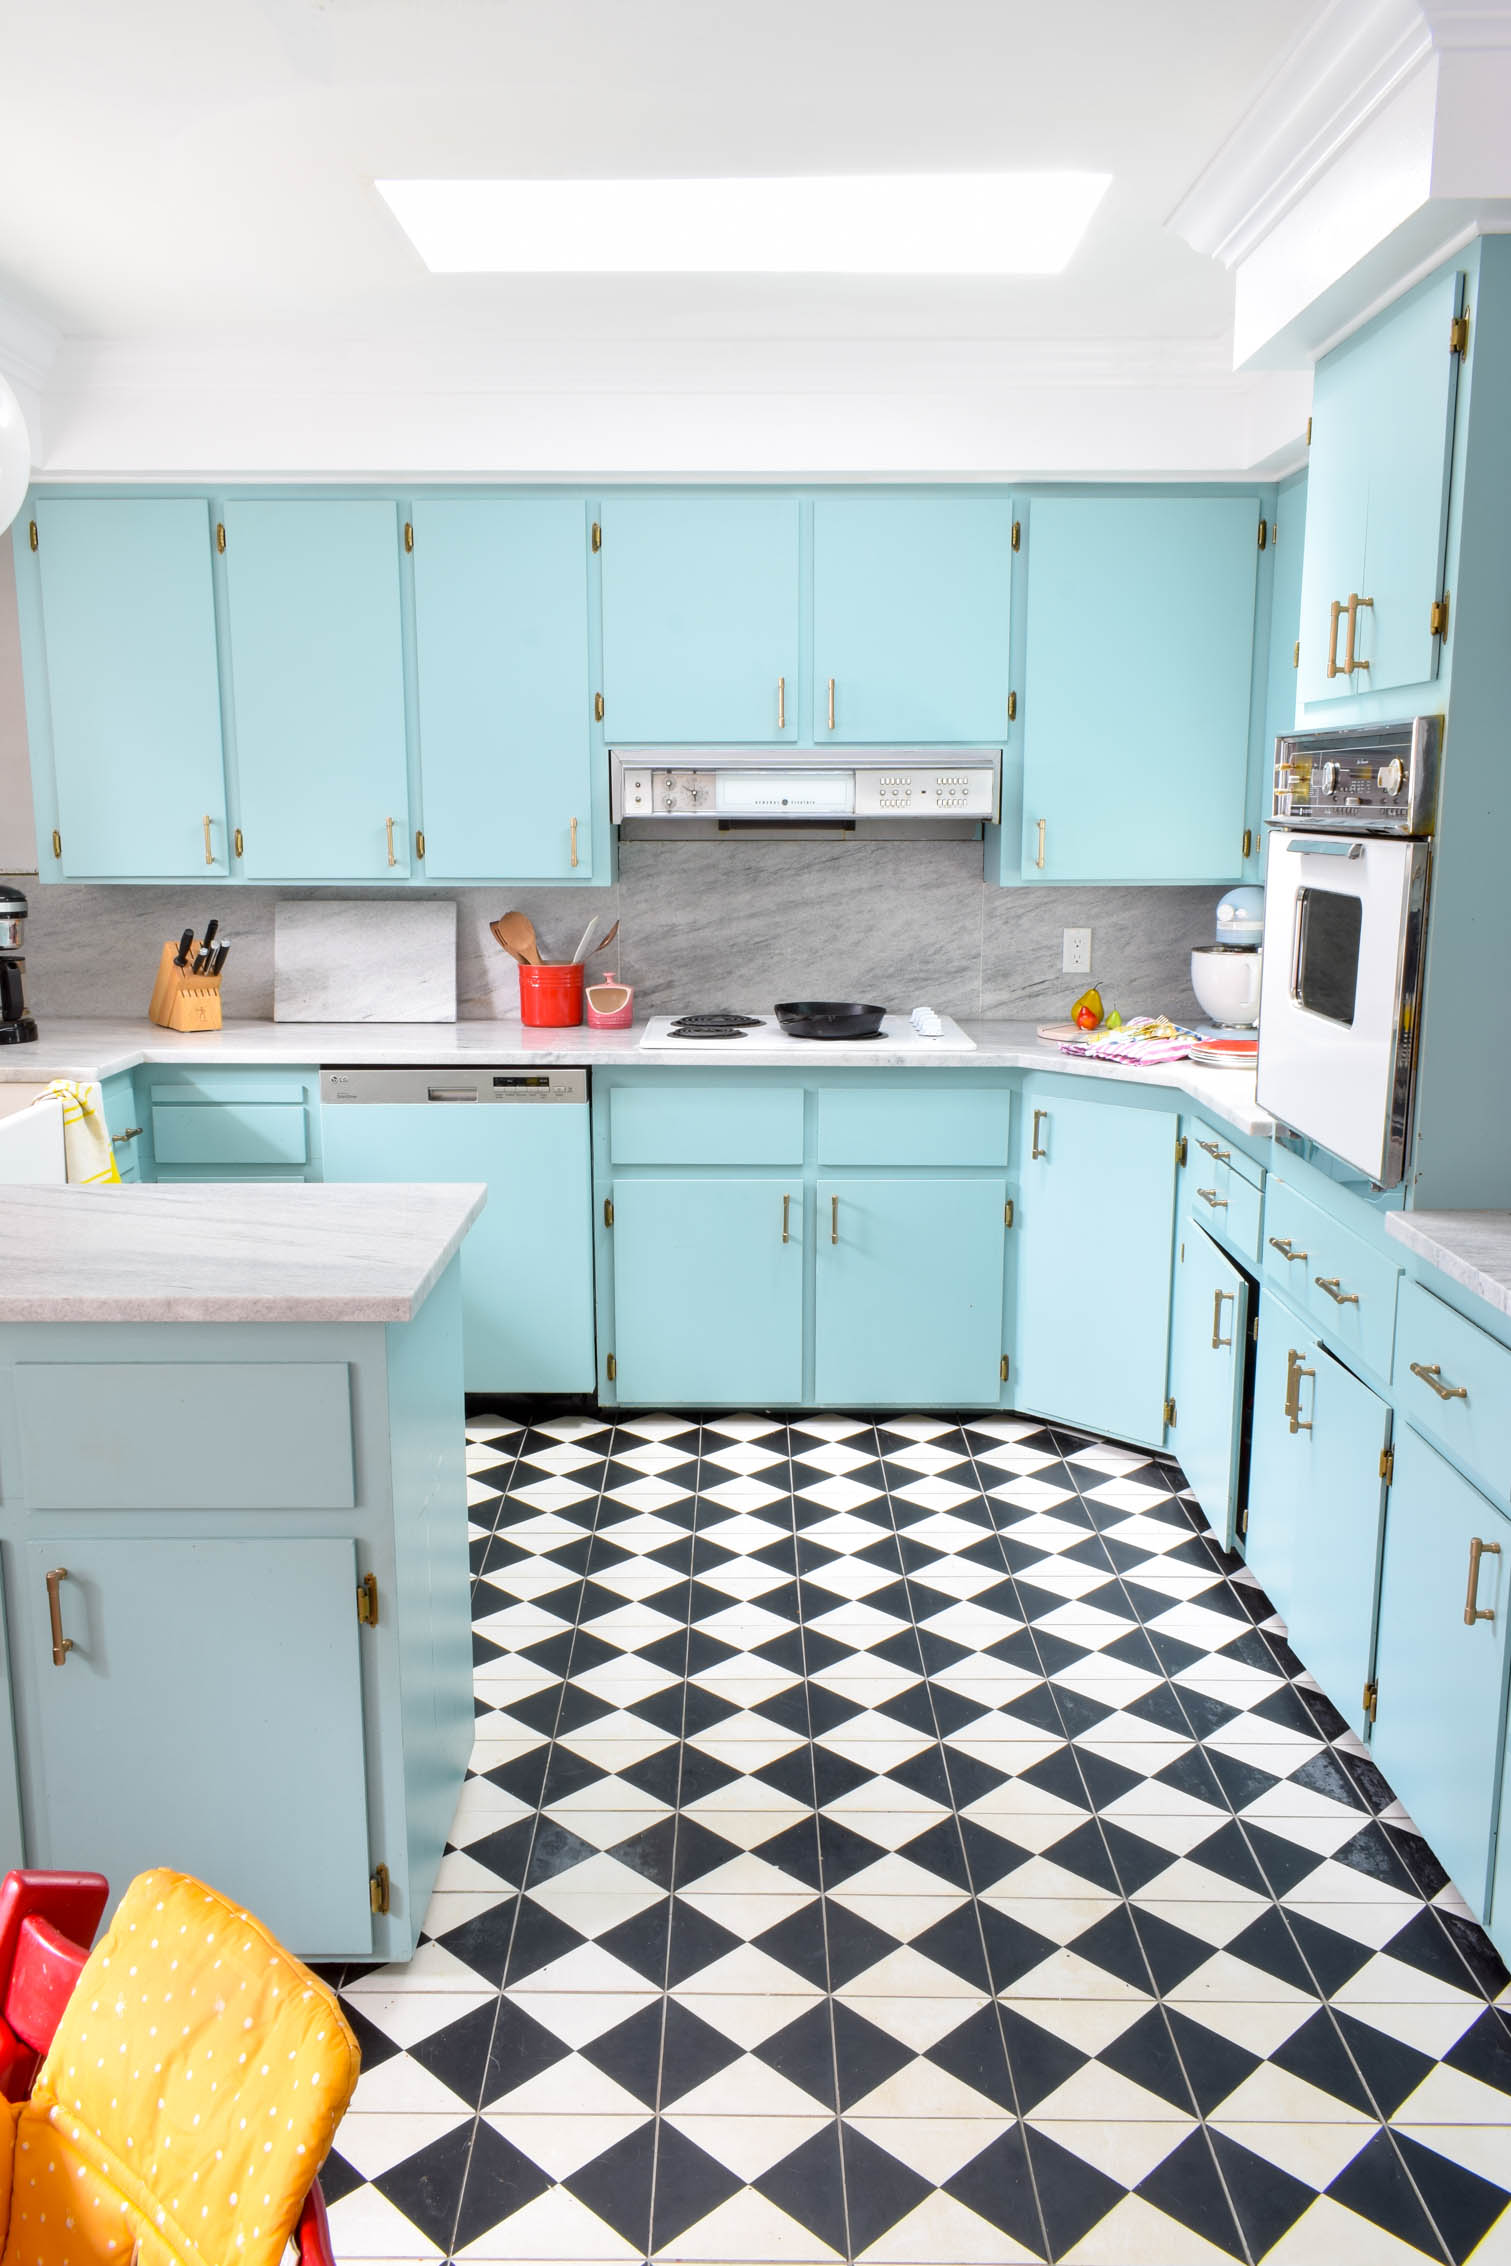 Our kitchen renovation update one year later. How is everything holding up? what would we have done differently? anything broken? I spill the beans on all our decisions, and show you how things are really holding up.